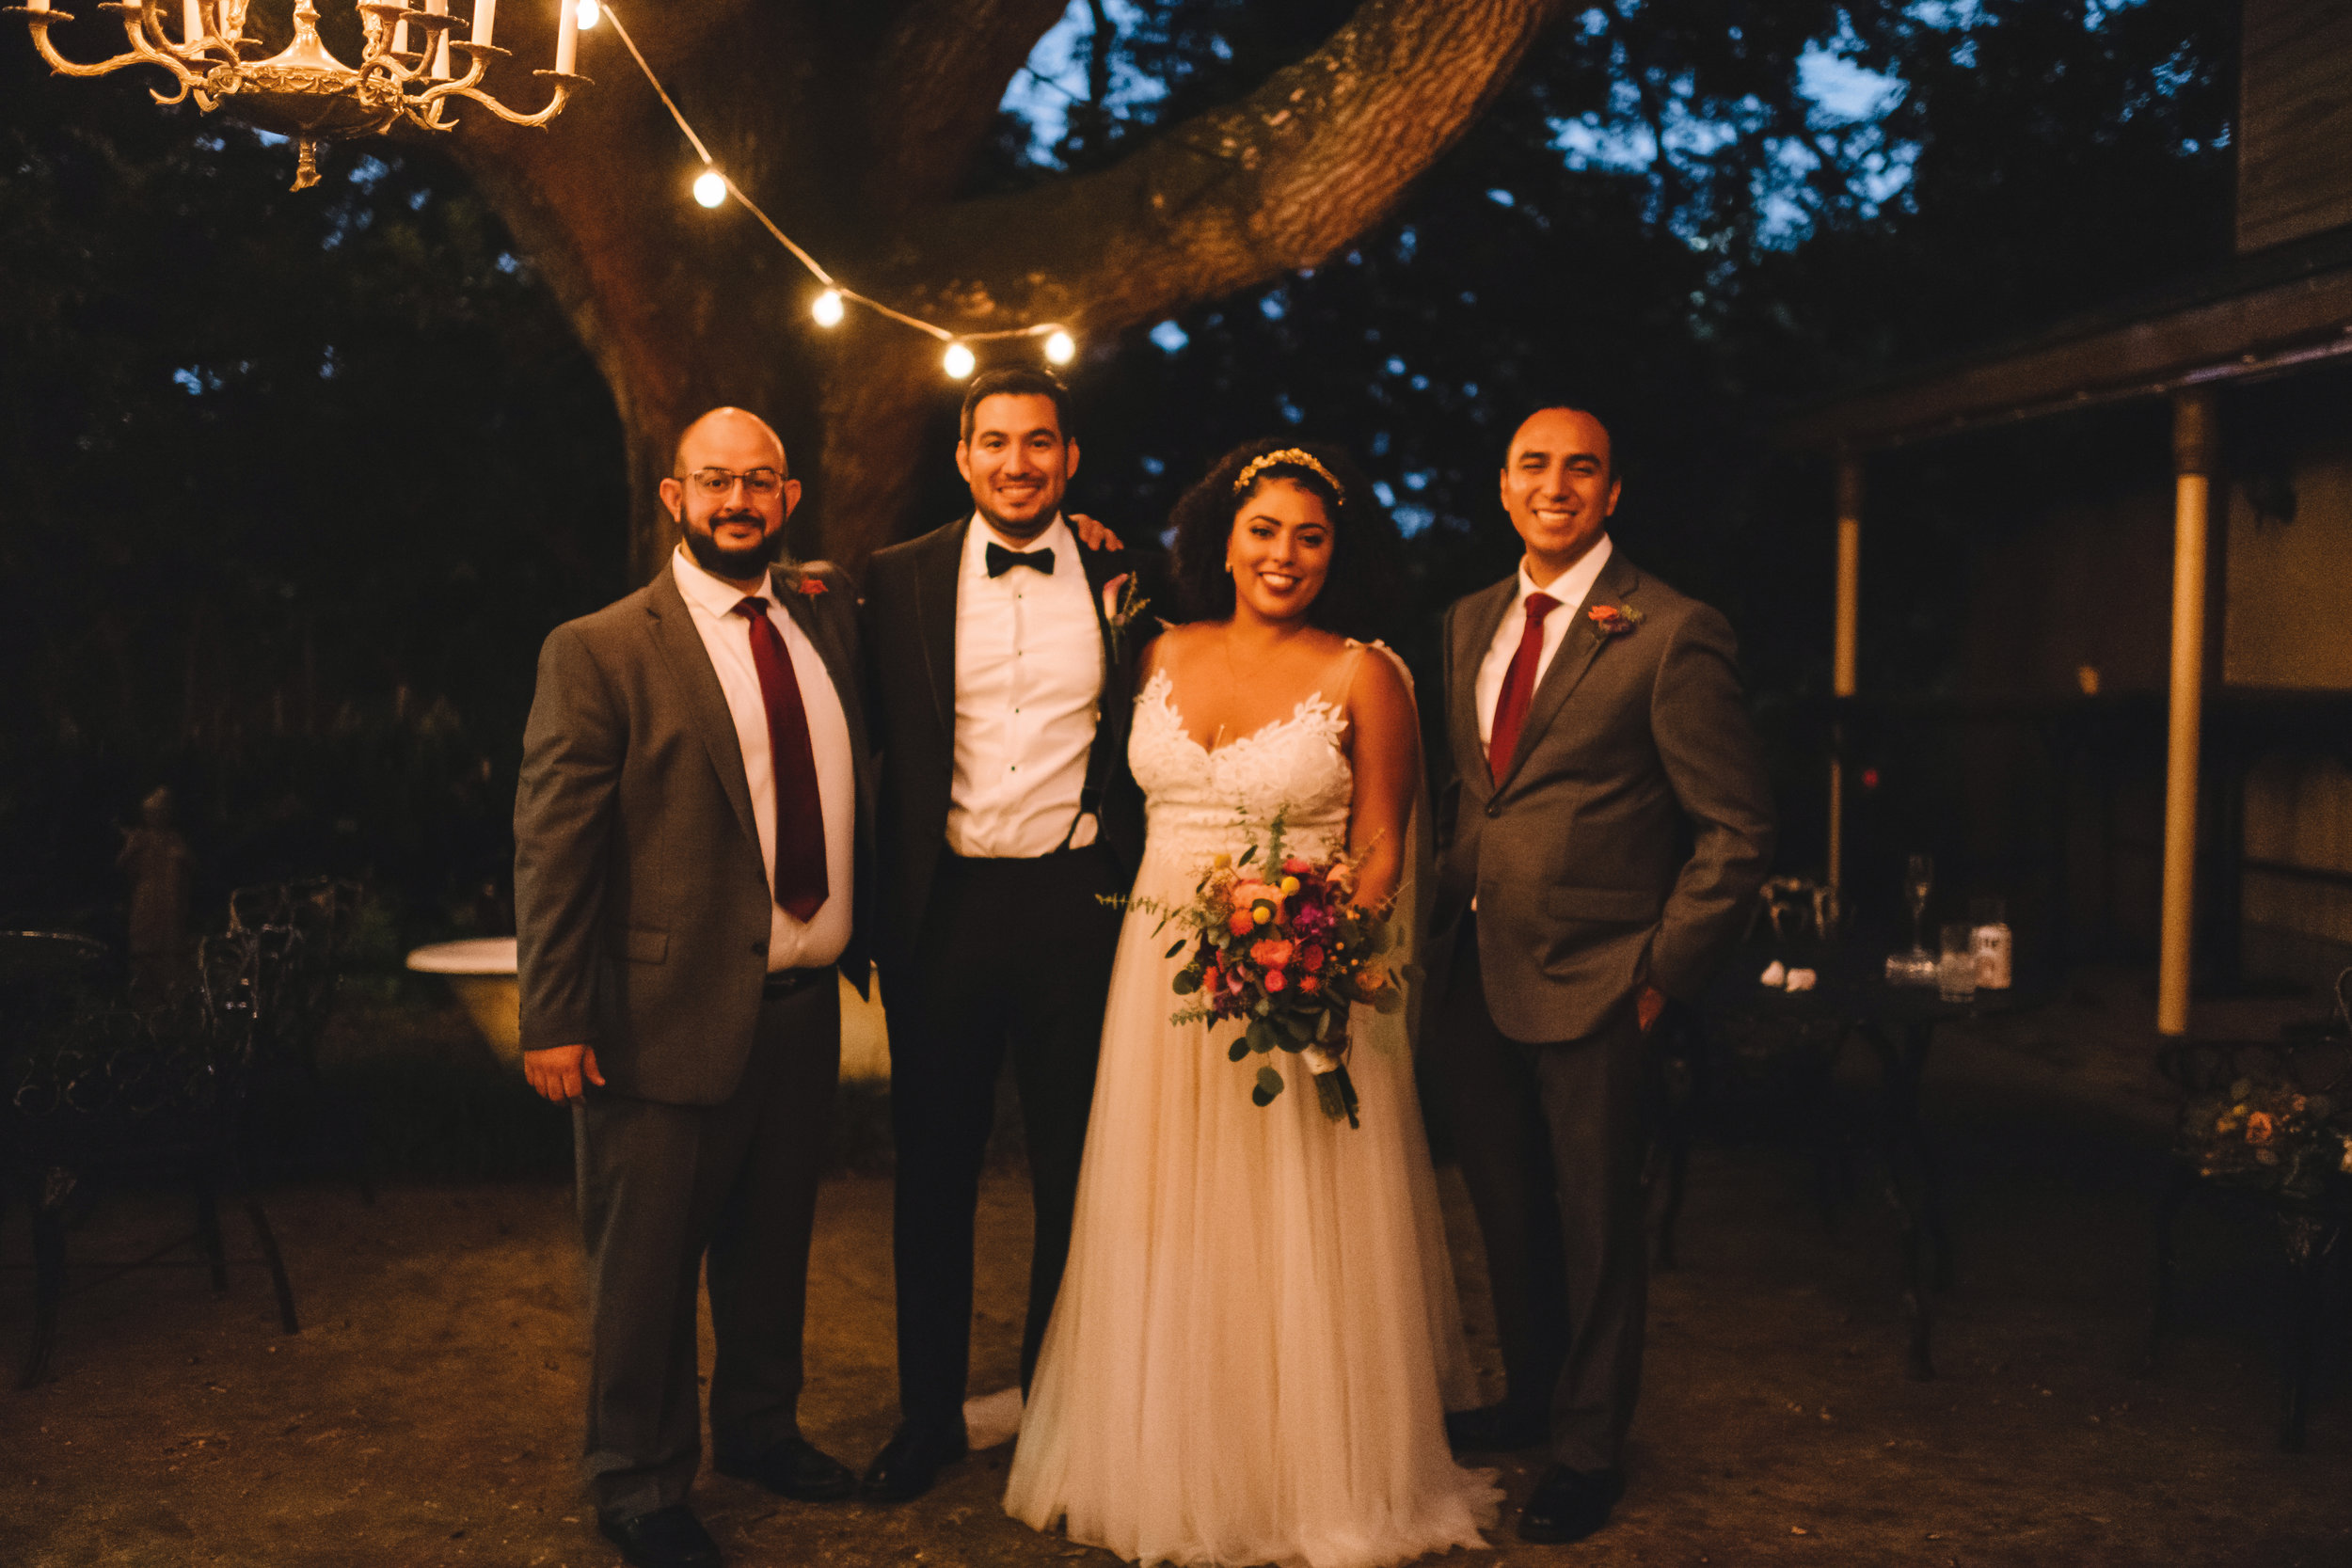 Ulysses Hernandez '07 (second from left) married Ariana McLean in New Orleans in October with formmates Oliver Morfin (l.) and John H. Montalvo (r.) as groomsmen. .